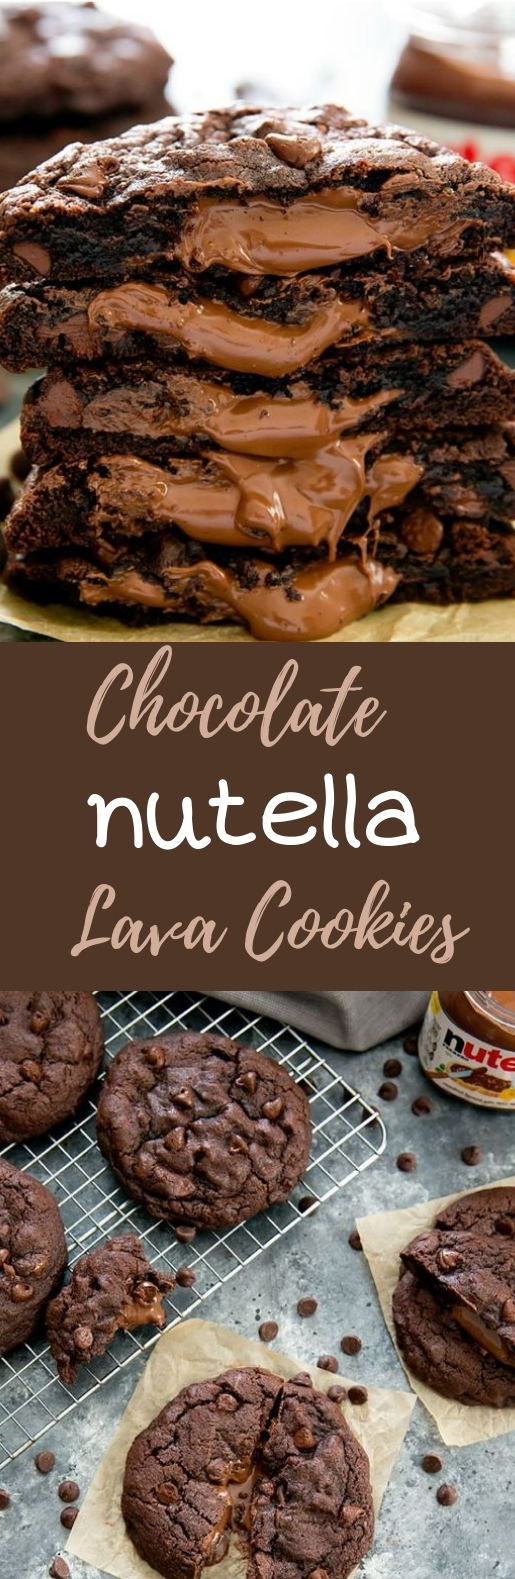 Chocolate Nutella Lava Cookies #chocolate #cookies